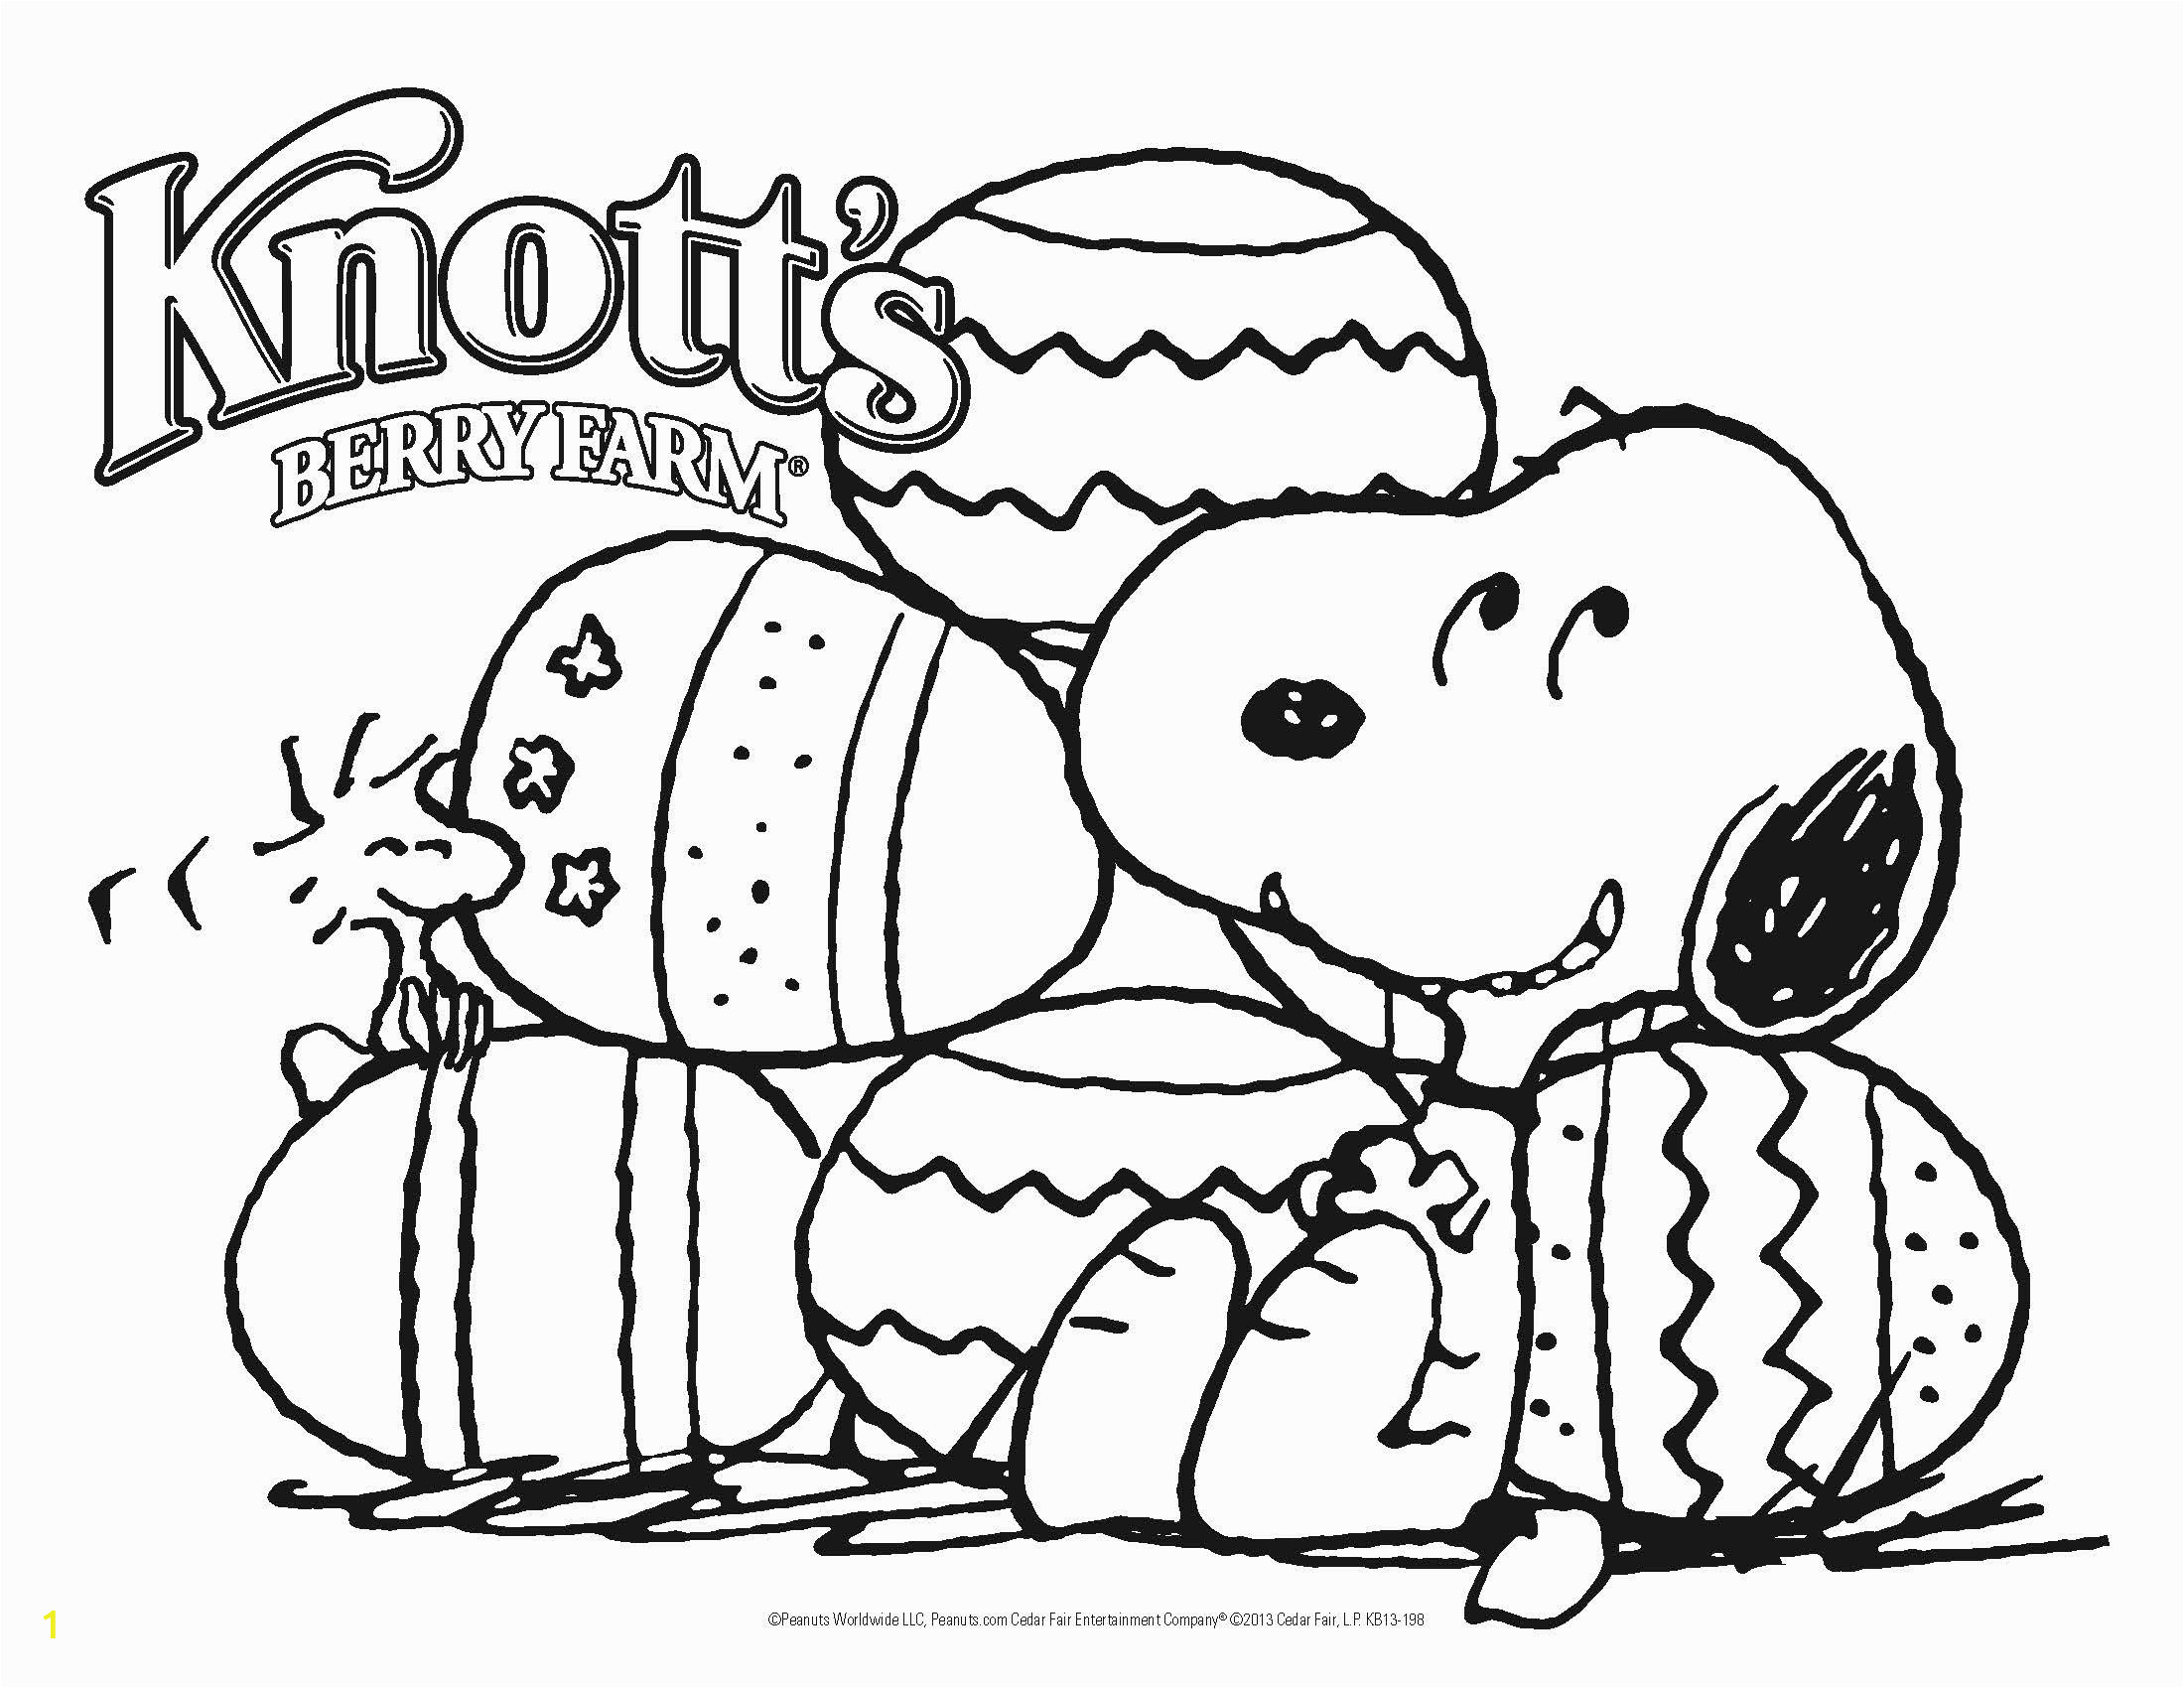 peanuts christmas coloring pages charlie brown at drawings free for gingerbread house pdf baby jesus page grinch sheets angel santa tree colouring picture claus